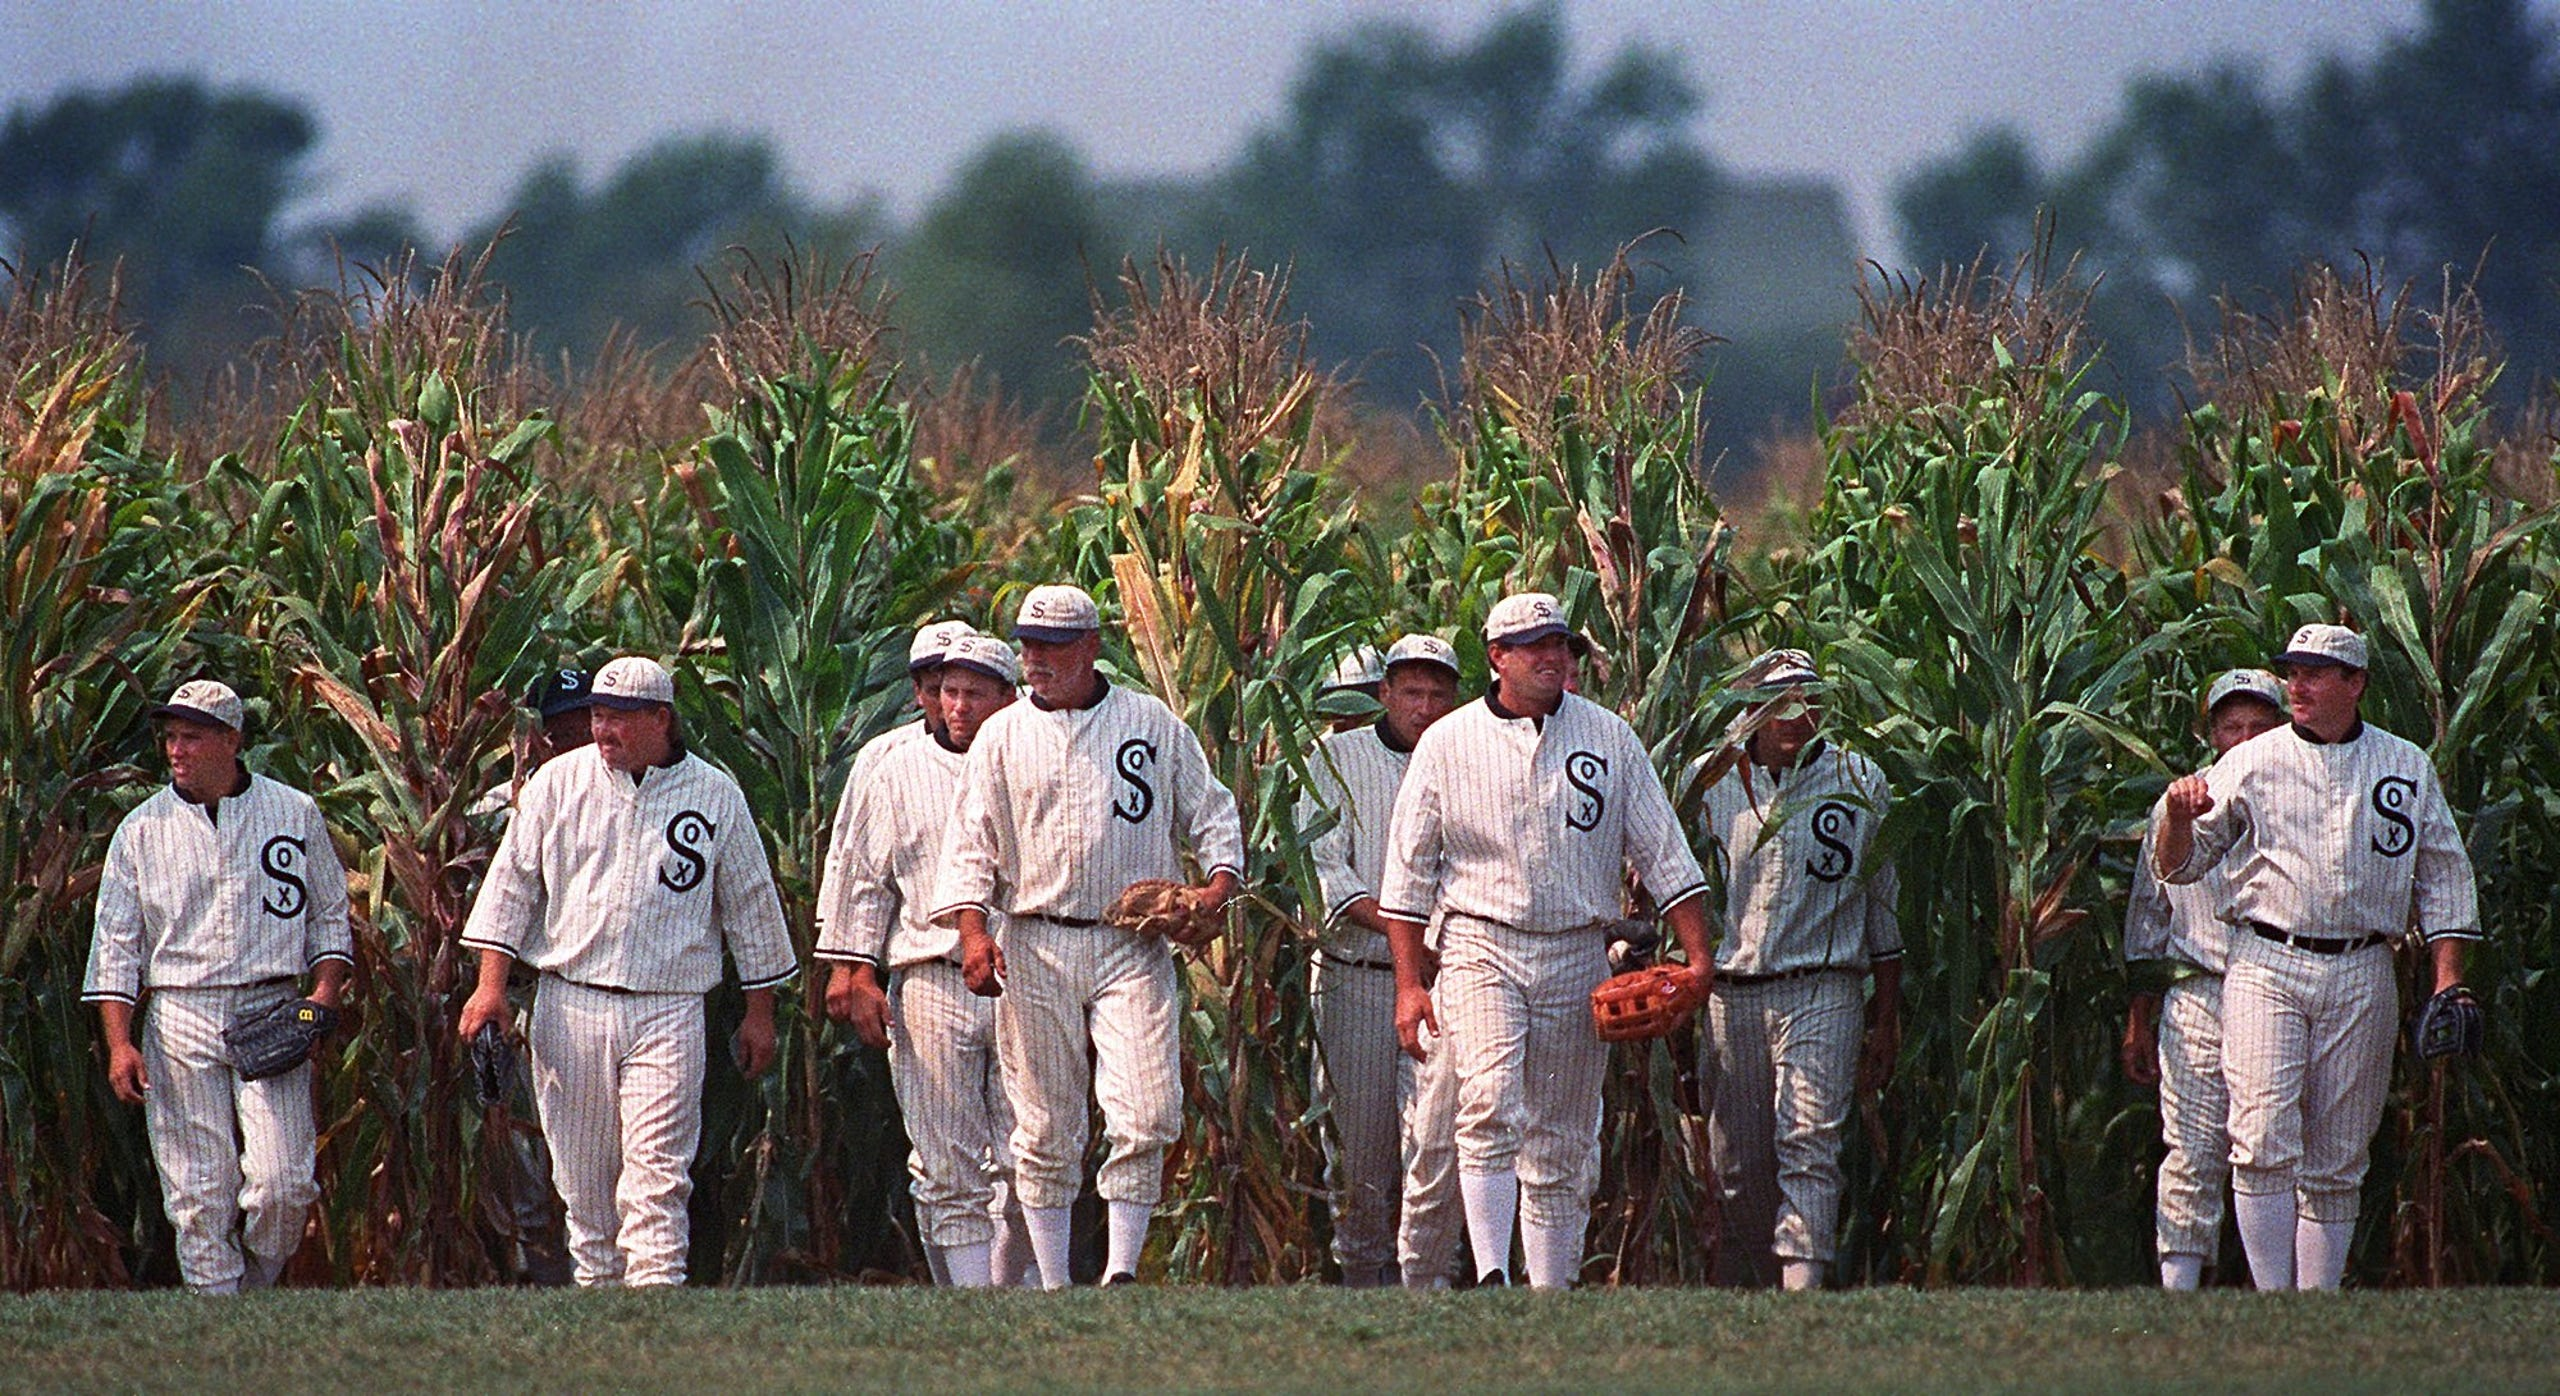 Image result for Images, Field of Dreams, Players coming out of the corn fields